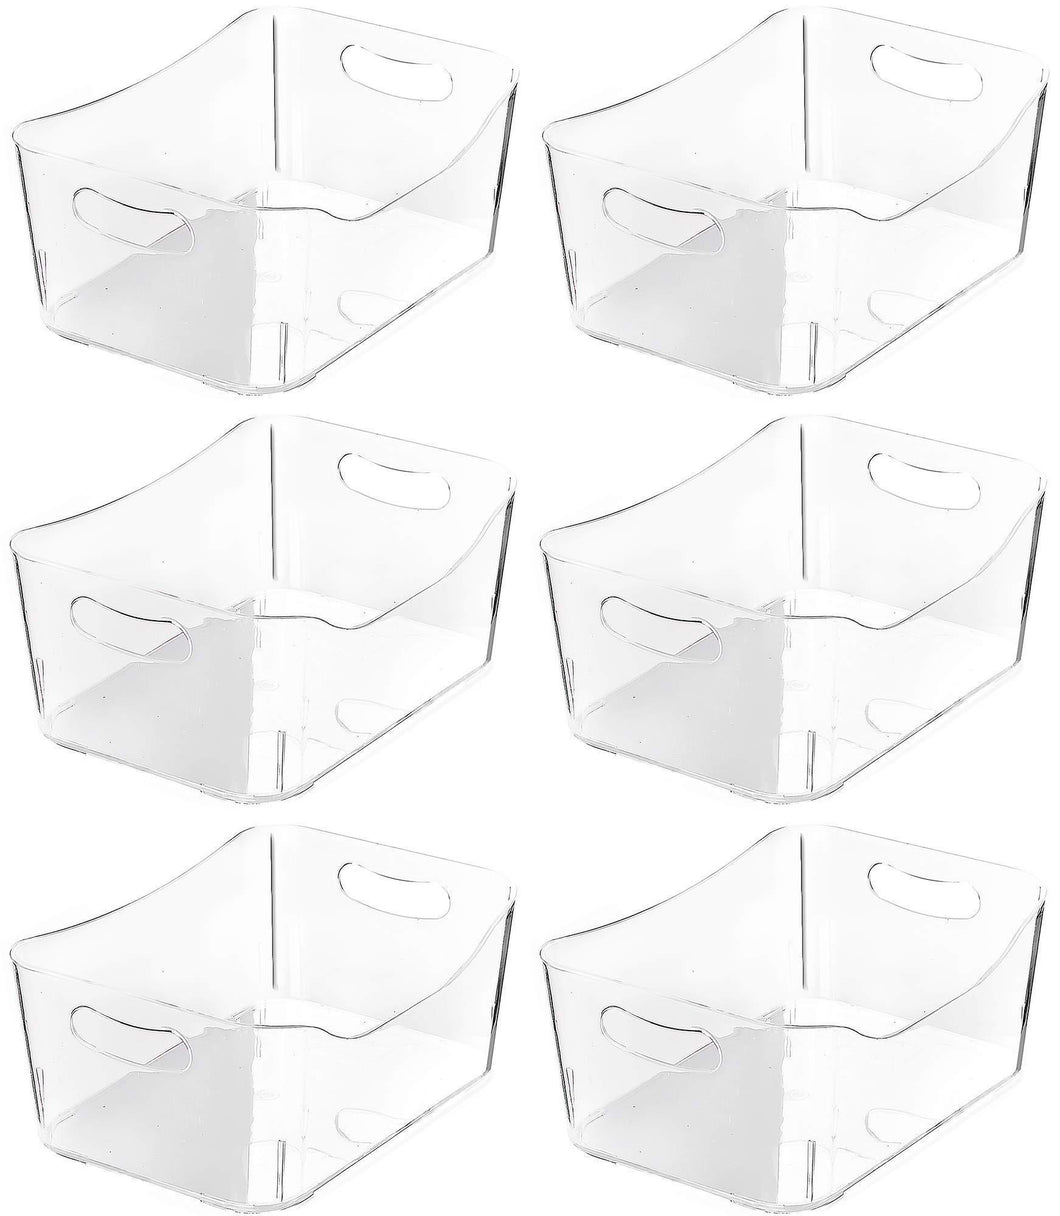 Top rated ybm home open bin storage basket kitchen pantry bathroom vanity laundry health and beauty product supply organizer under cabinet caddy medium 6 pack clear